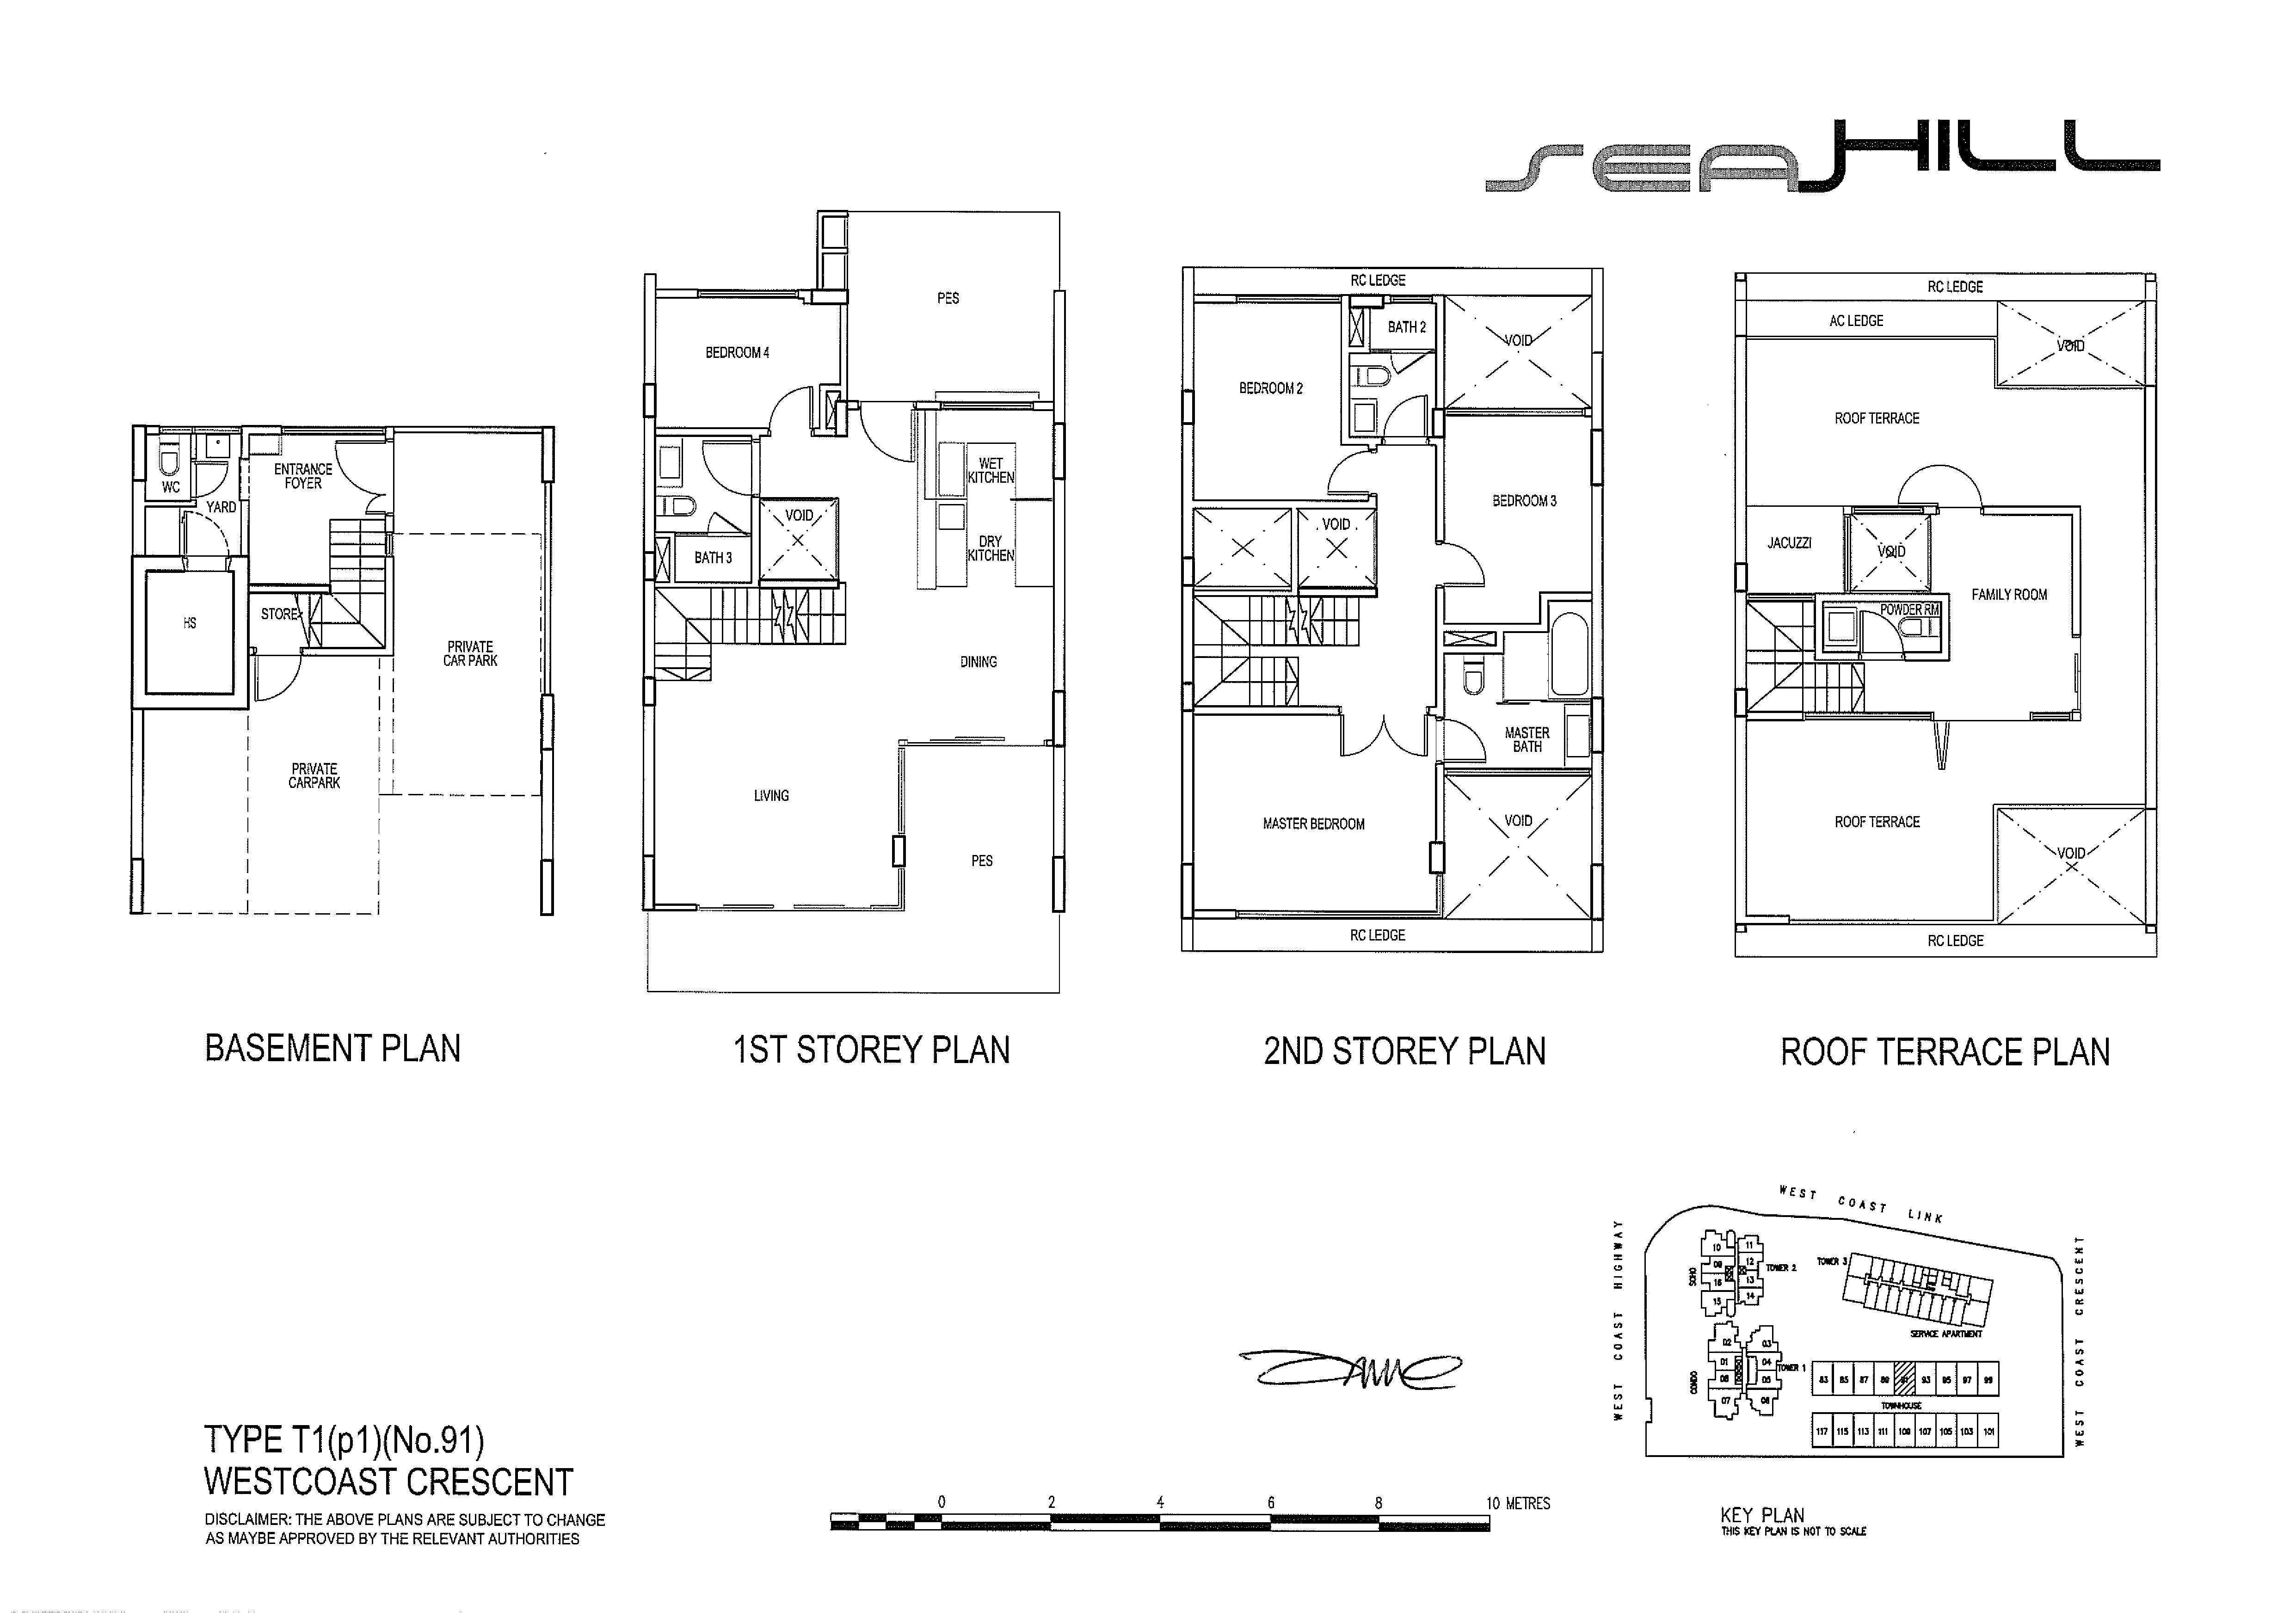 Seahill 4 Bedroom Townhouse Type T1(p1) (No.91) Floor Plans